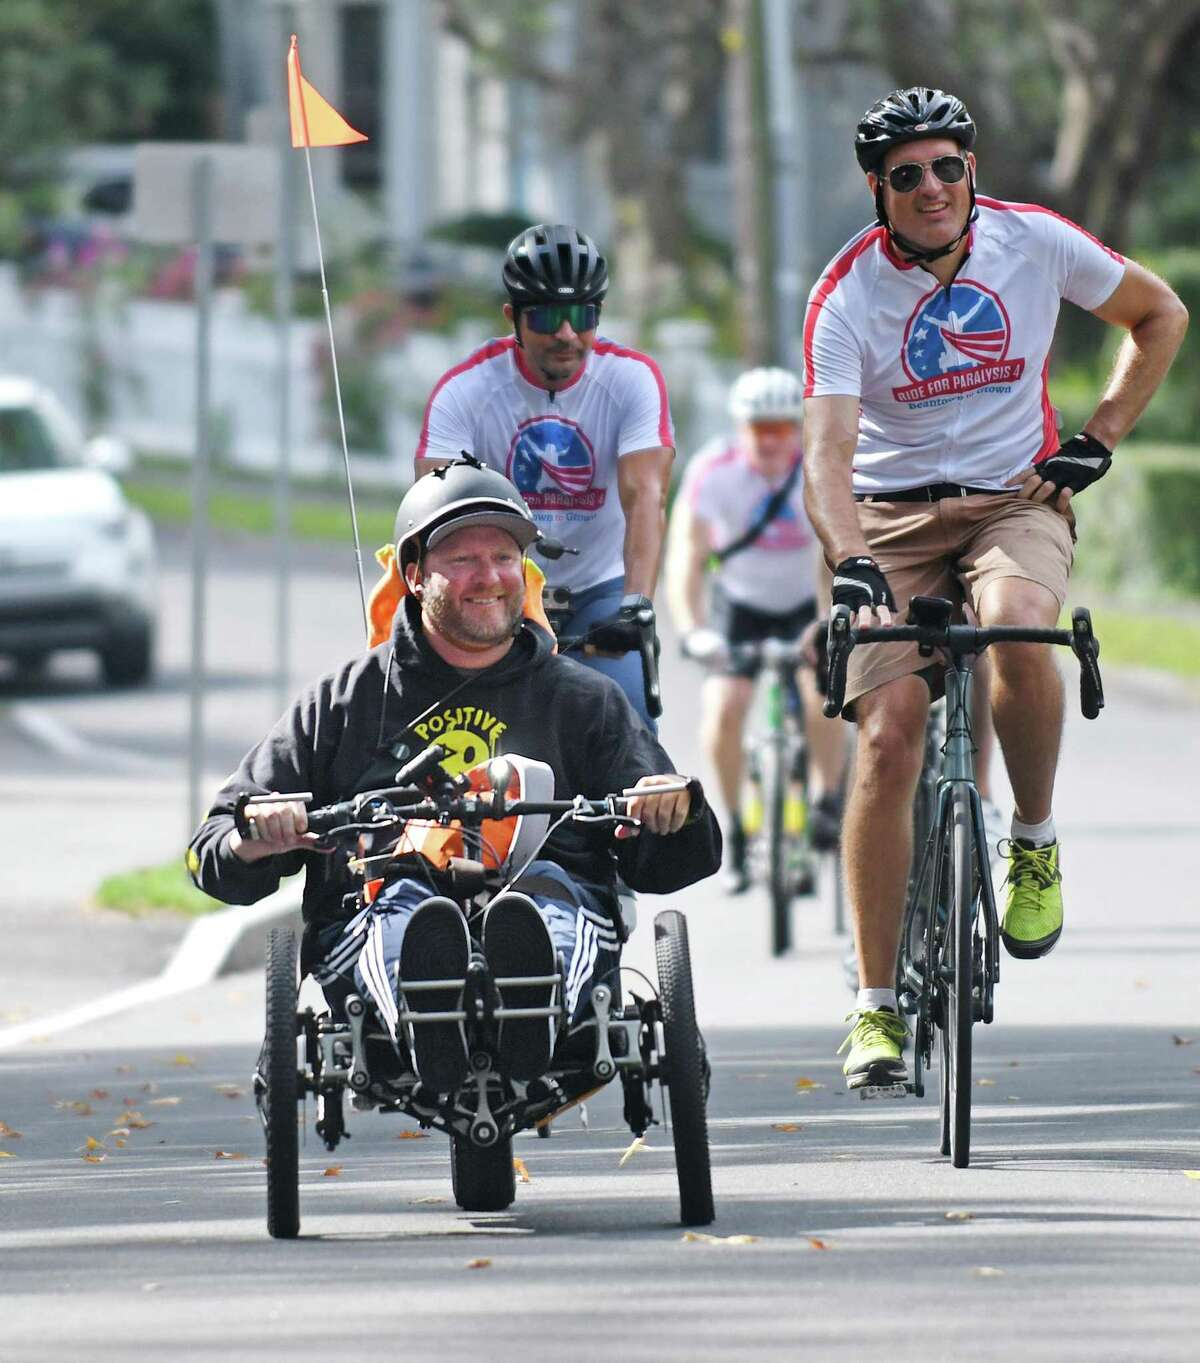 """Brunswick alumnus Janne Kouri passes by in his electric bike as part of his tour """"Ride for Paralysis 4: Beantown to Gtown"""" at Brunswick School in Greenwich, Conn. Wednesday, Sept. 22, 2021. Kouri is in the middle of a 520 mile, 12 day ride from Boston to Washington, D.C. to raise money and awareness for the 6 million individuals and wounded service members living with paralysis in the U.S."""